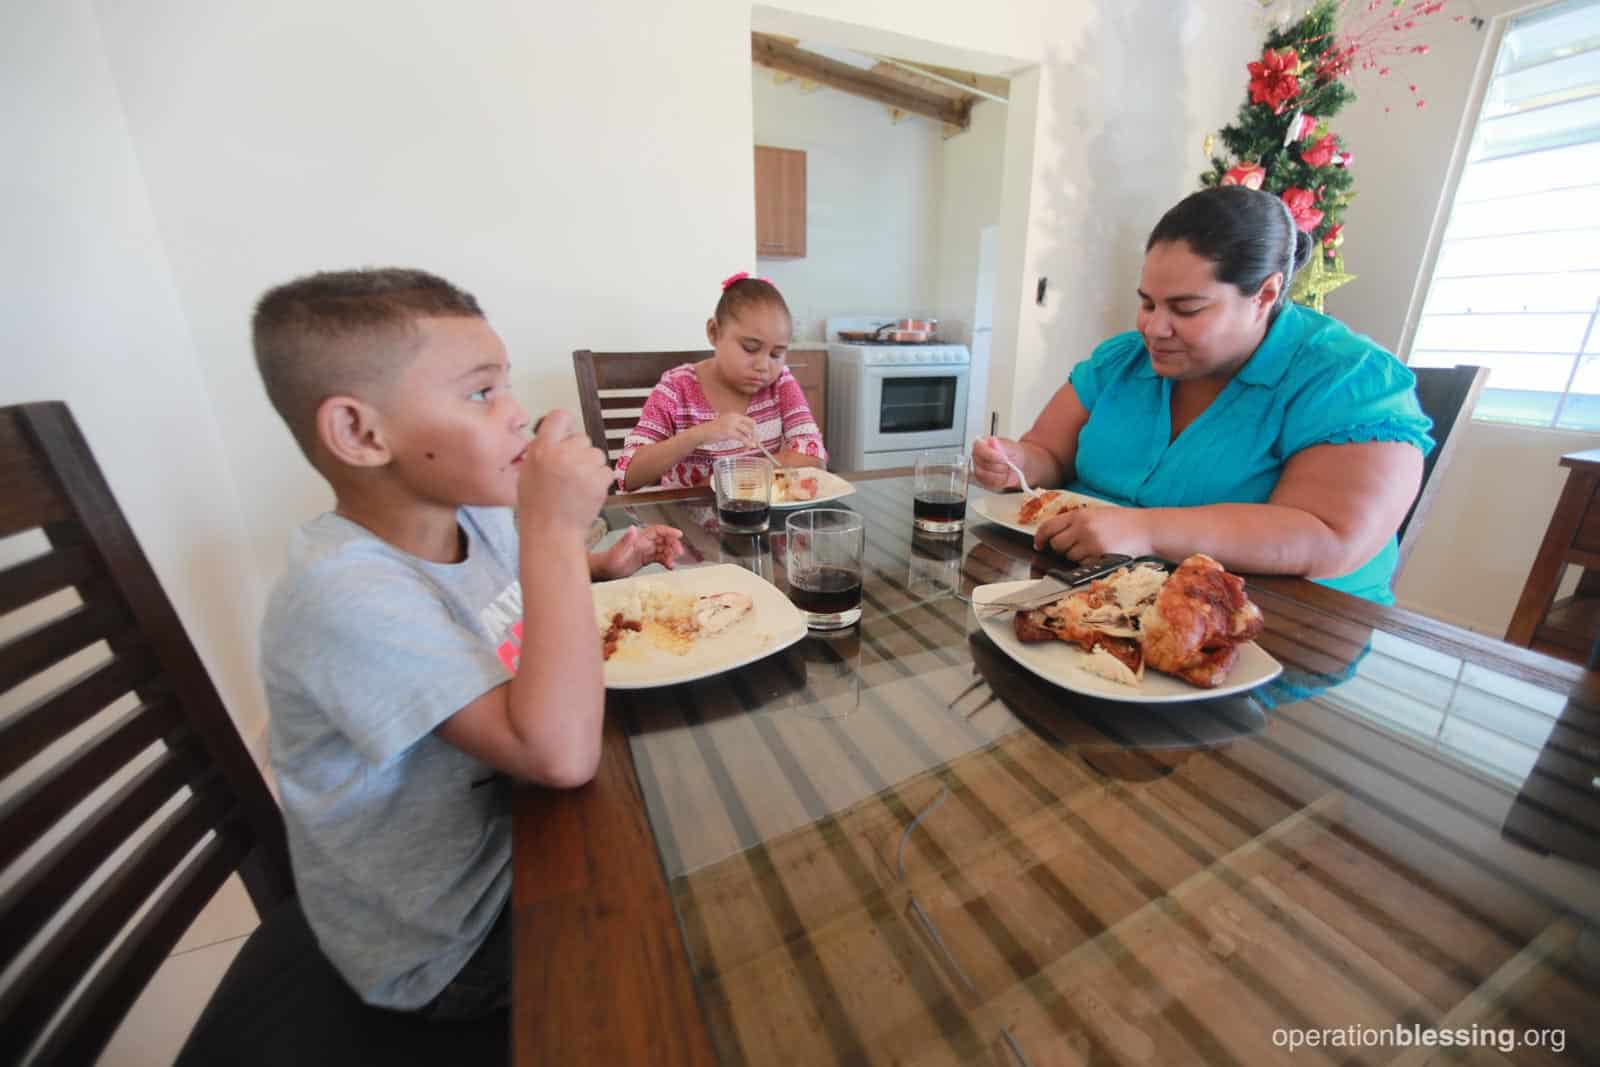 This family in Puerto Rico shares a happy meal together after they weathered many life storms.